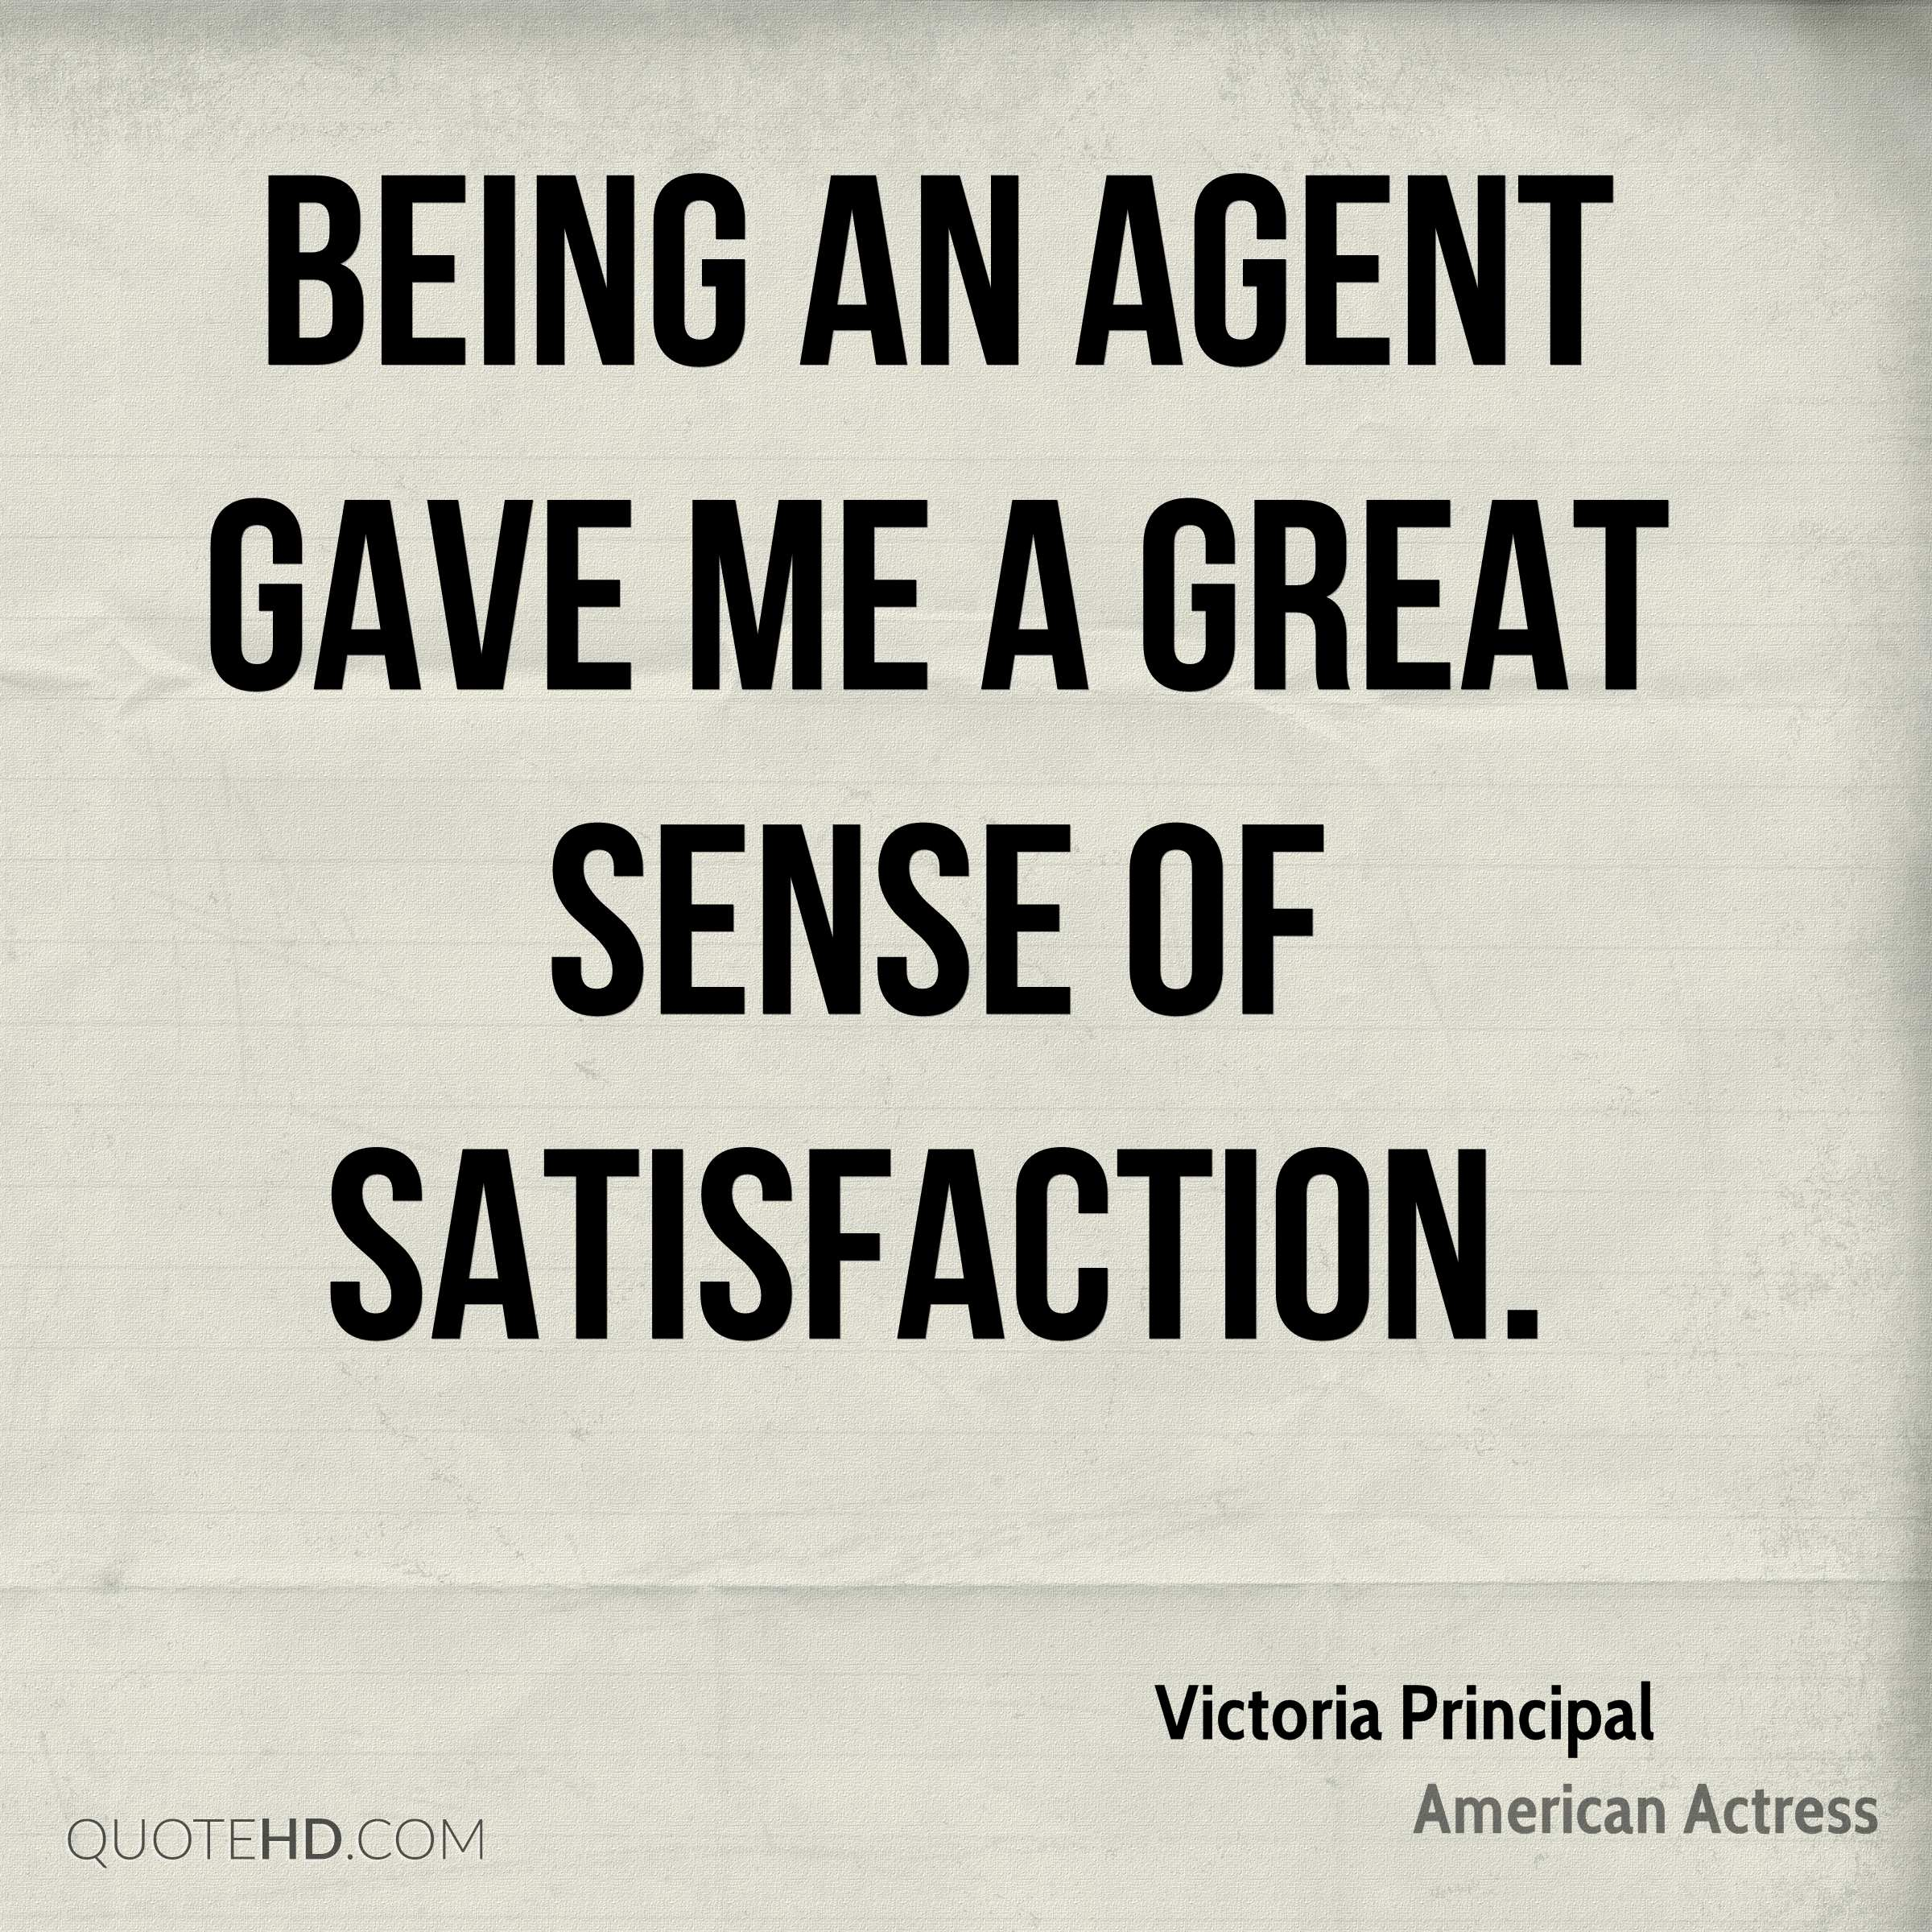 Being an agent gave me a great sense of satisfaction.